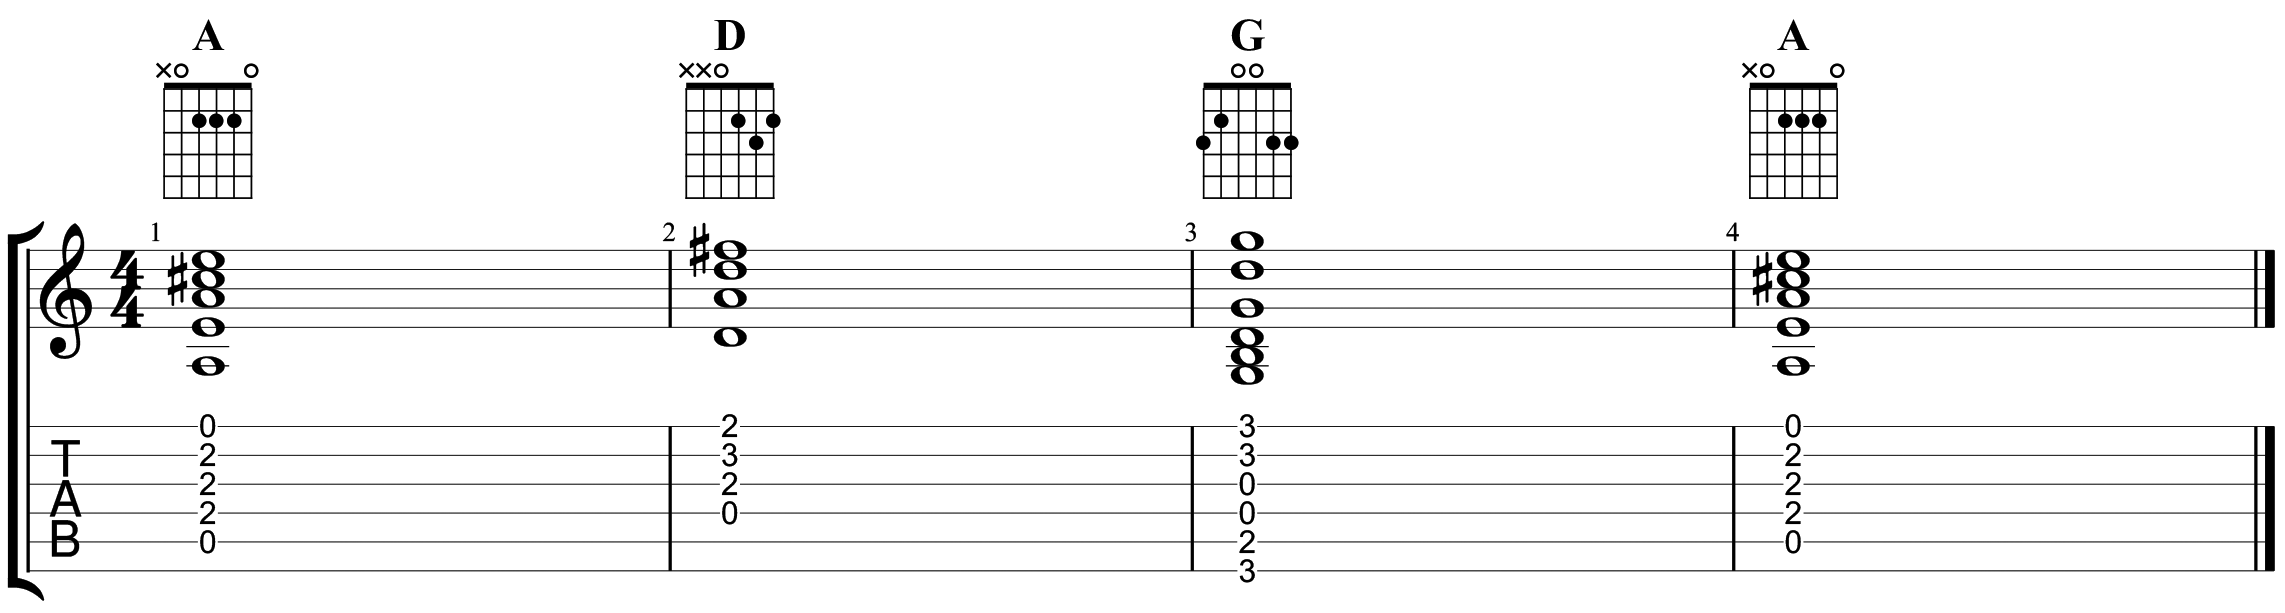 image009How to read guitar tab 5